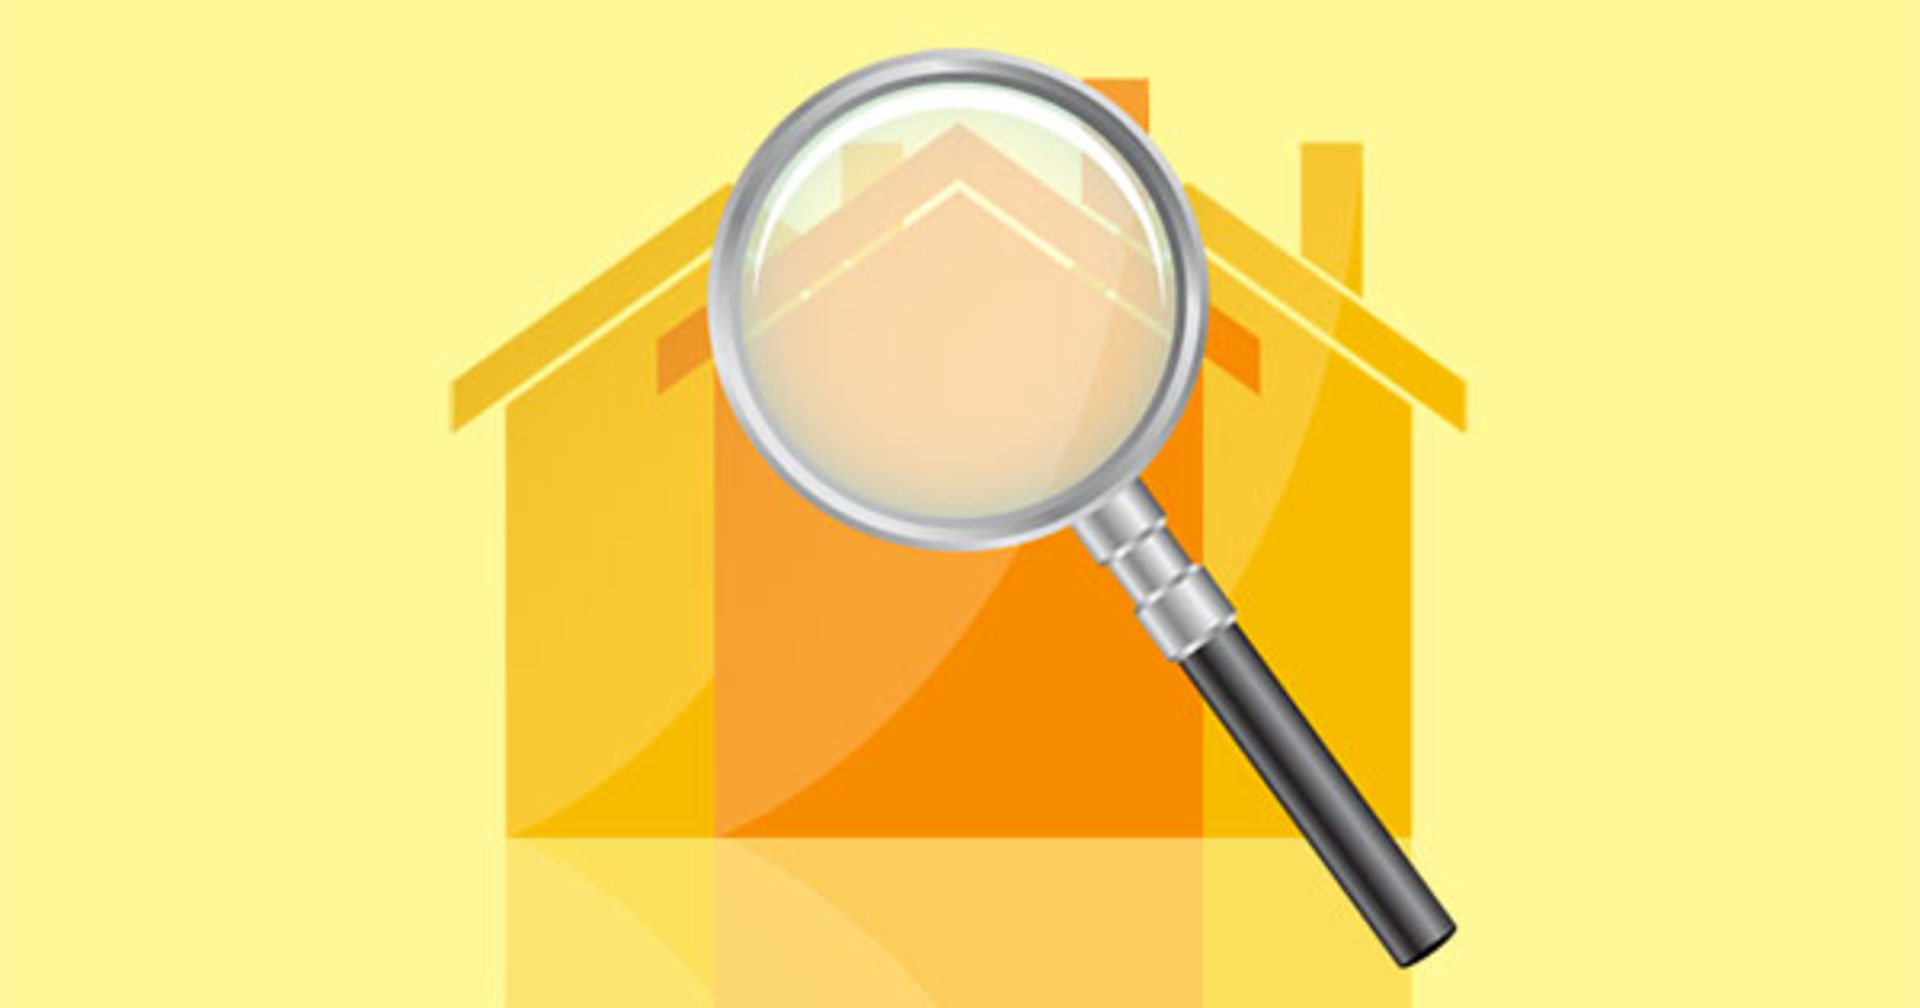 What to Expect From Your Home Inspection